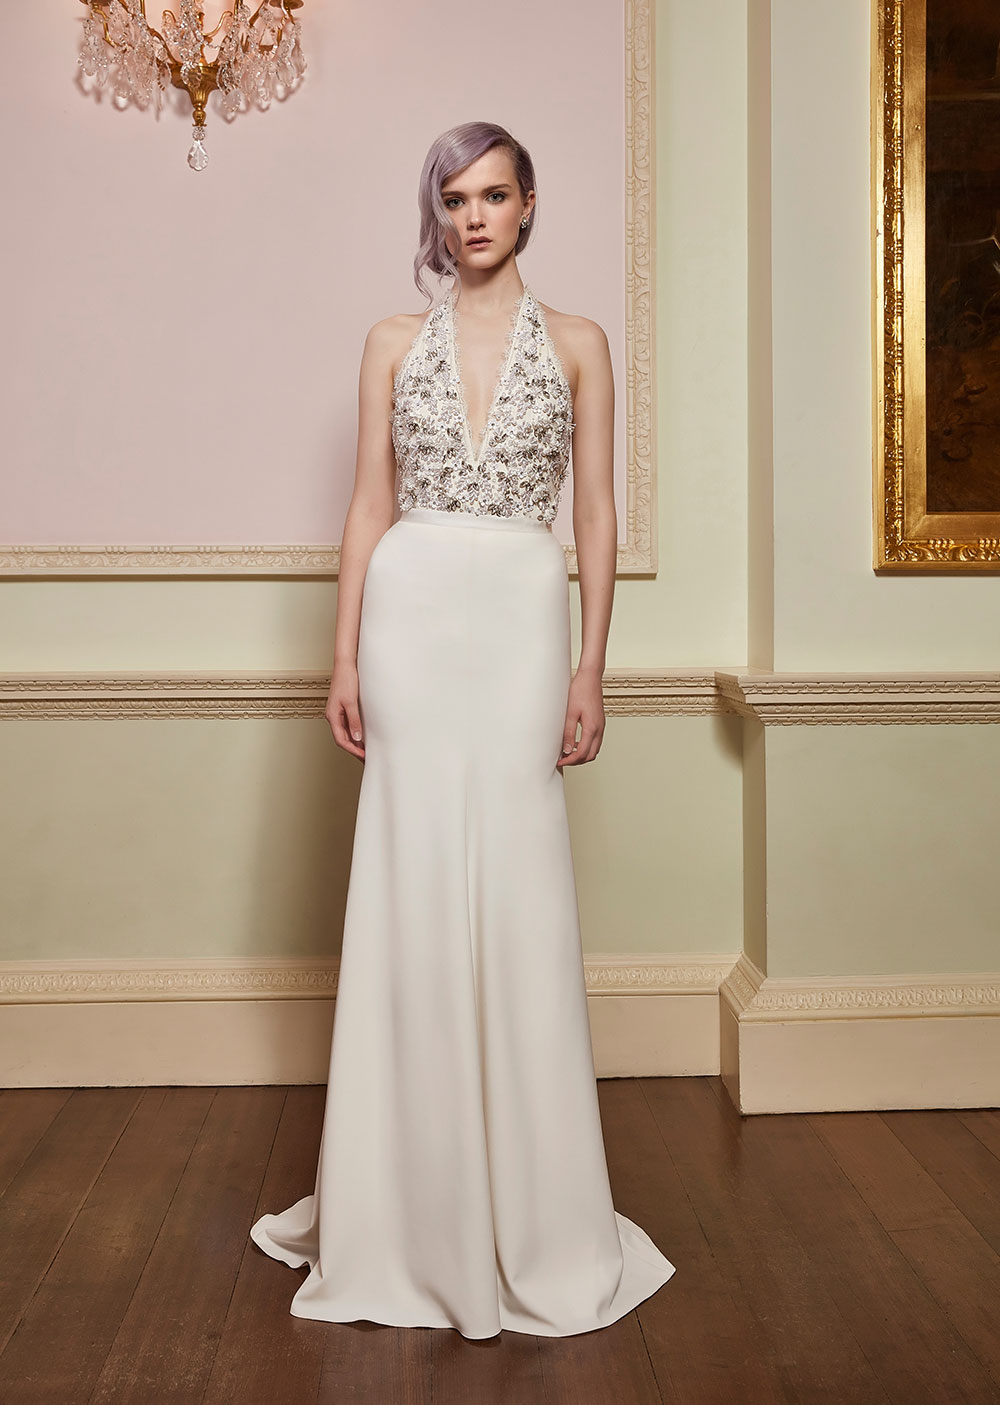 Verity & Christy - Jenny Packham 2018 Bridal Collection. www.theweddingnotebook.com